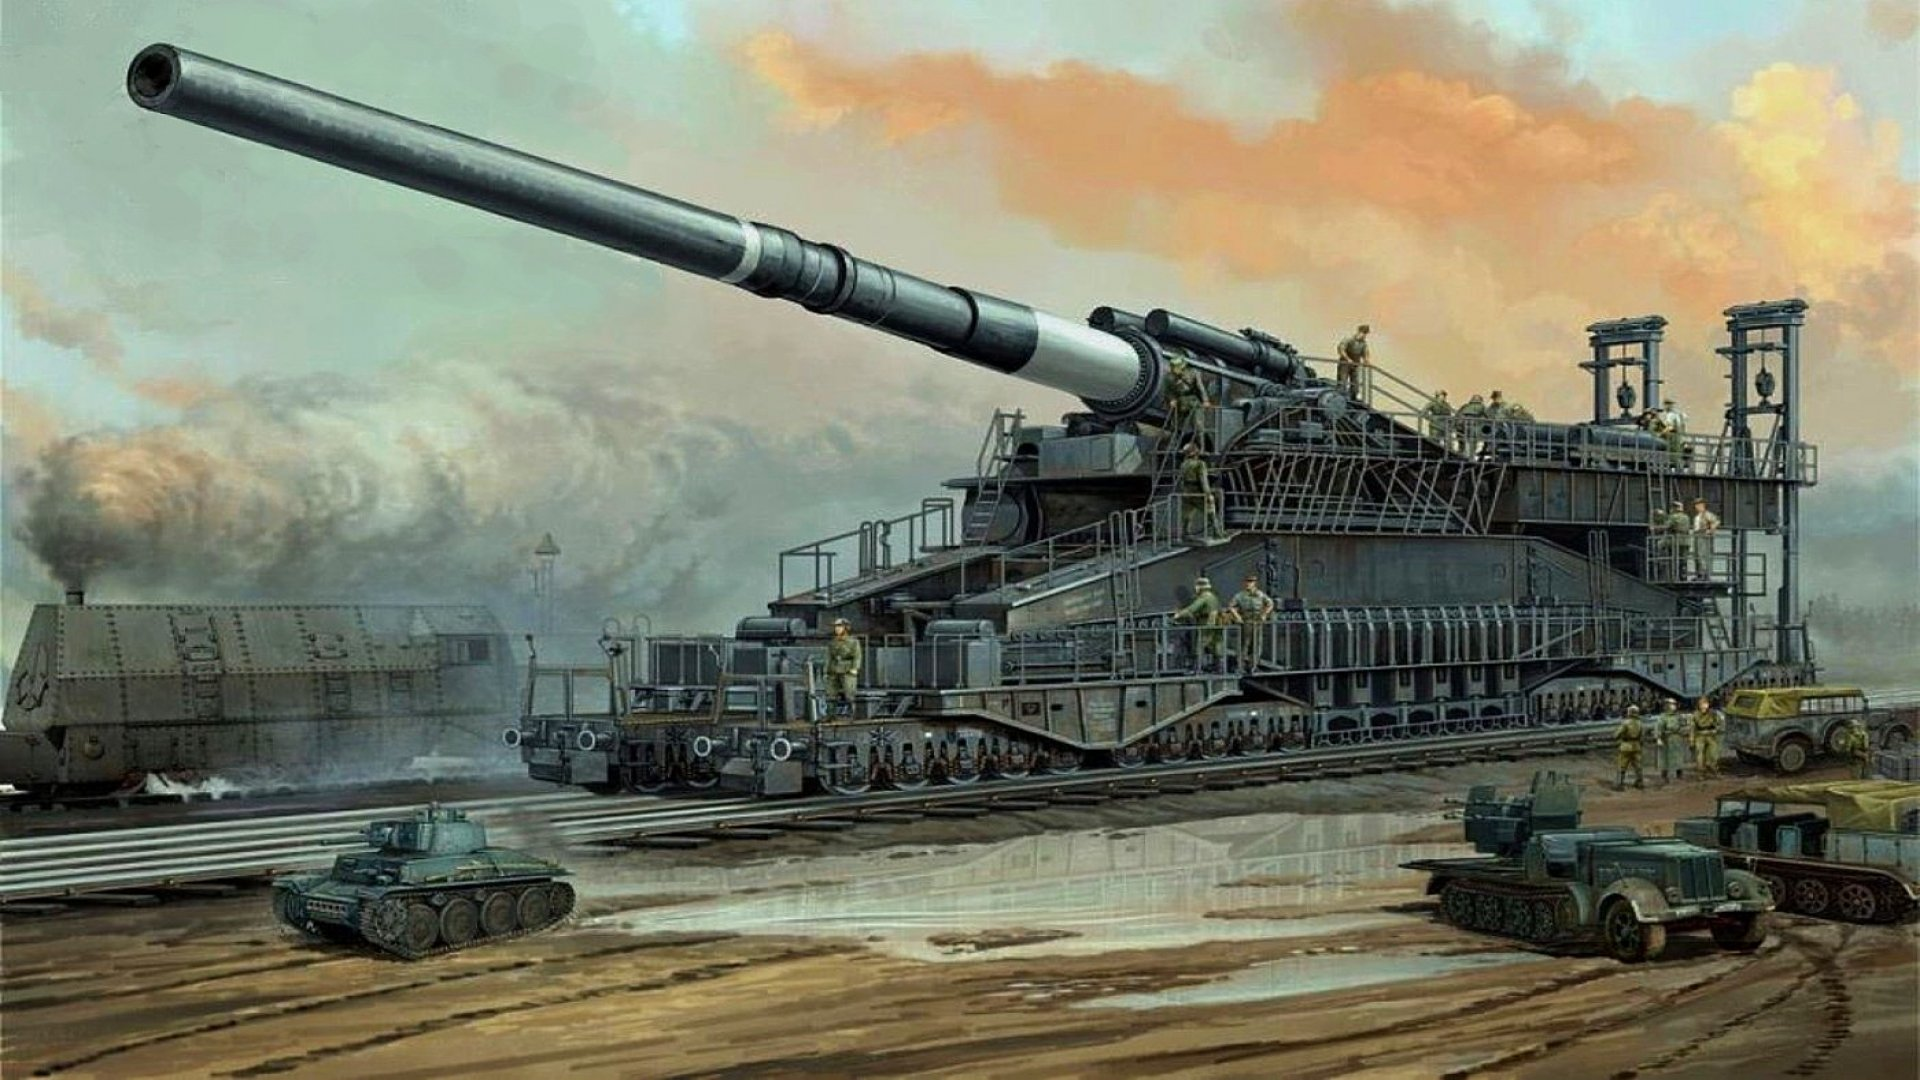 war military action shooter civil steampunk wallpaper background 1920x1080